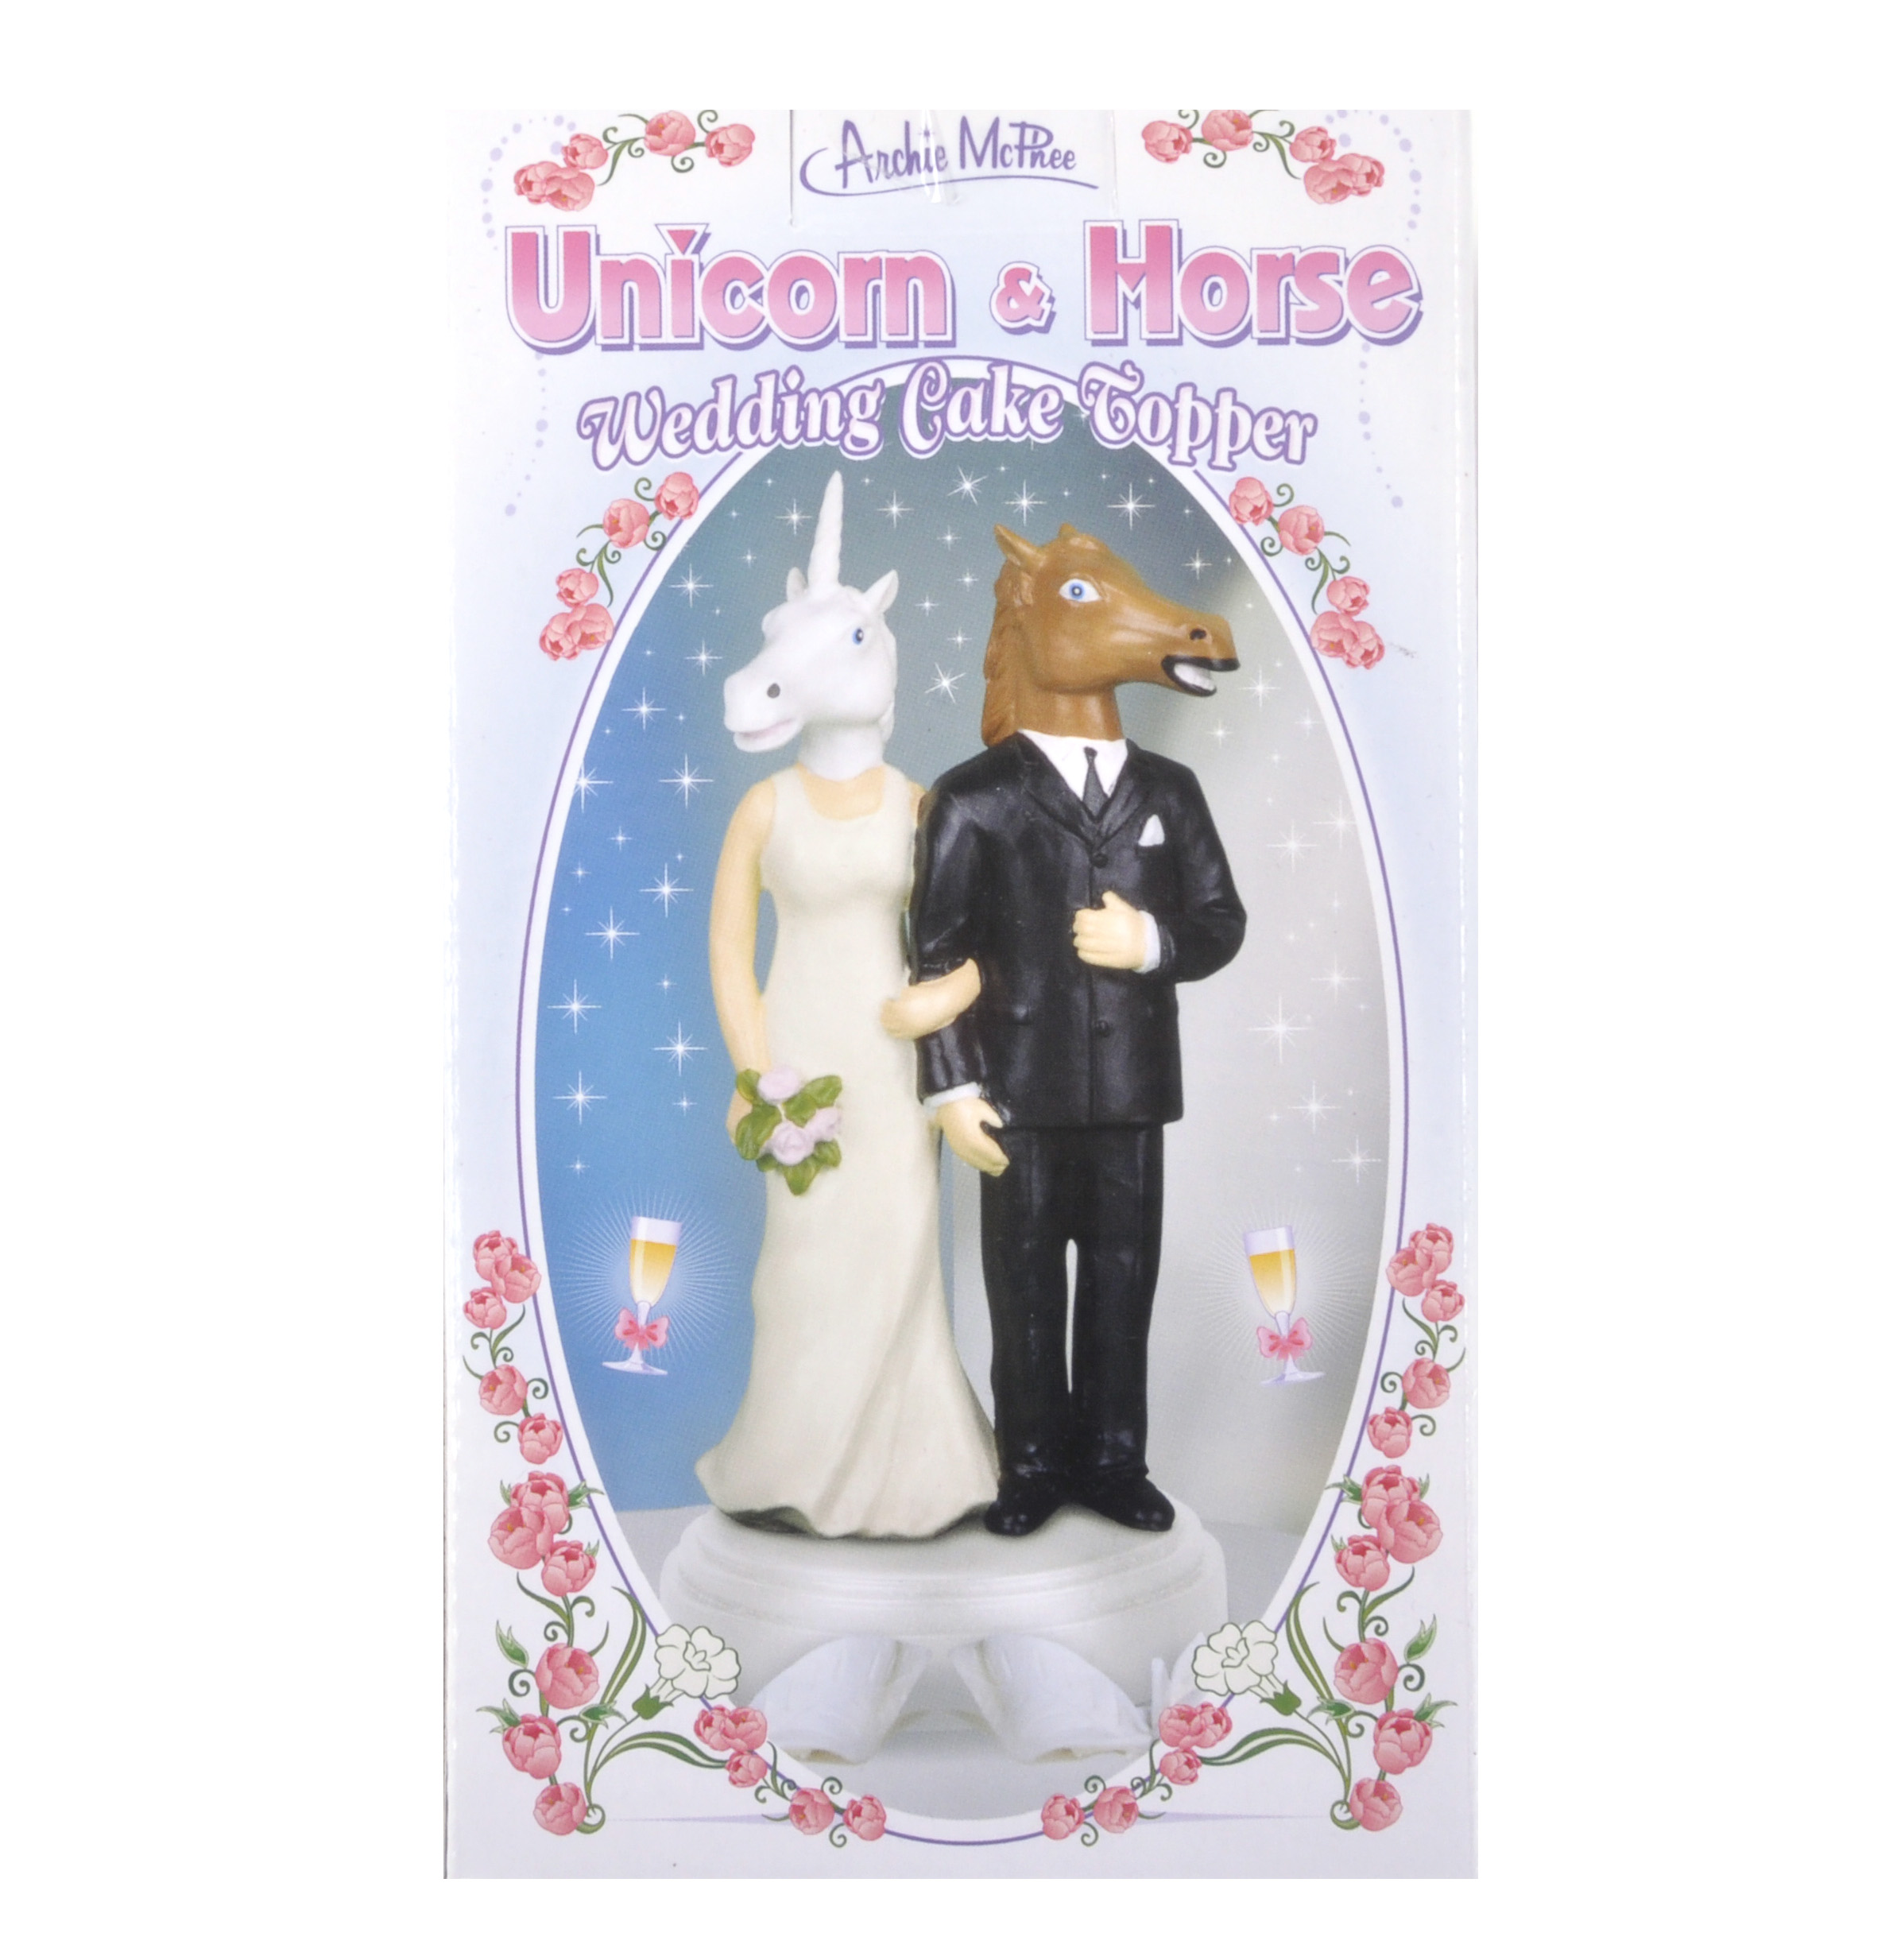 Unicorn and Horse Wedding Cake Topper | Pink Cat Shop